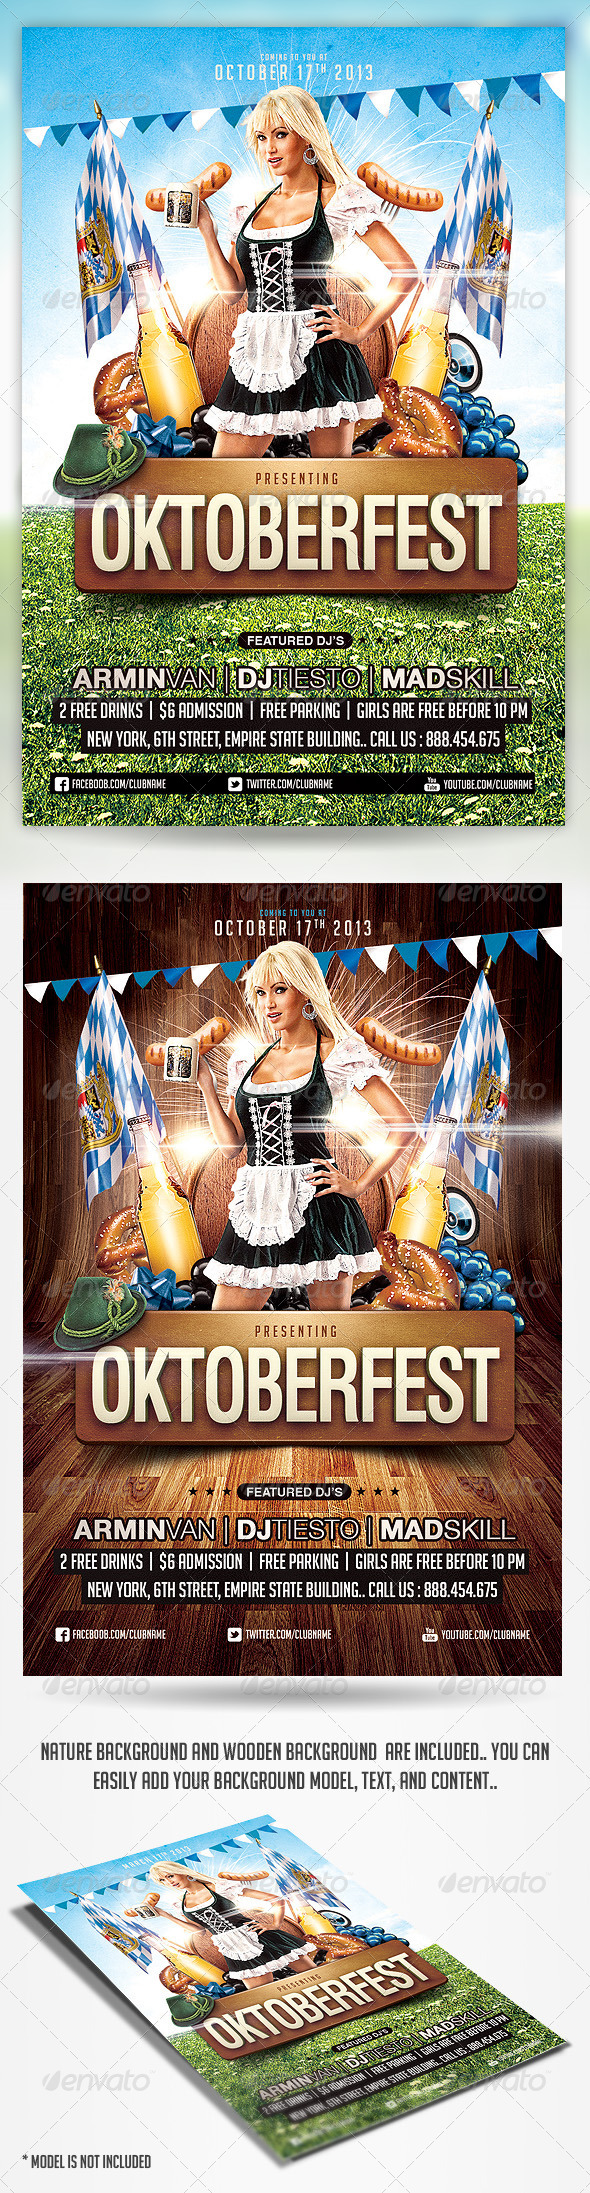 Oktoberfest Party Flyer Template - Holidays Events